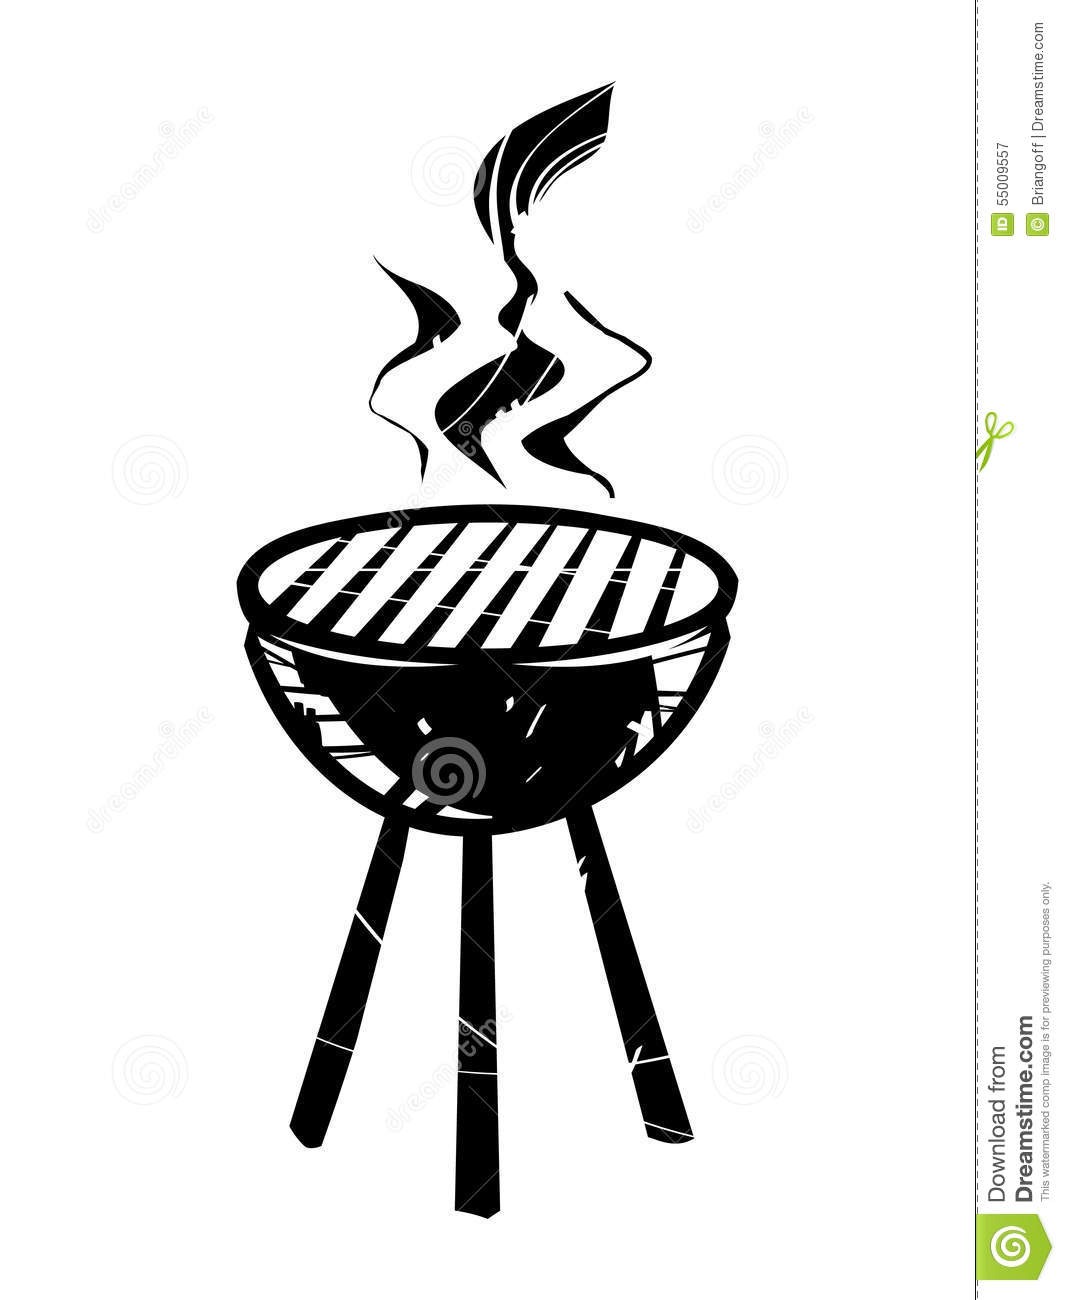 BBQ vector icon stock vector. Illustration of beef, poster.